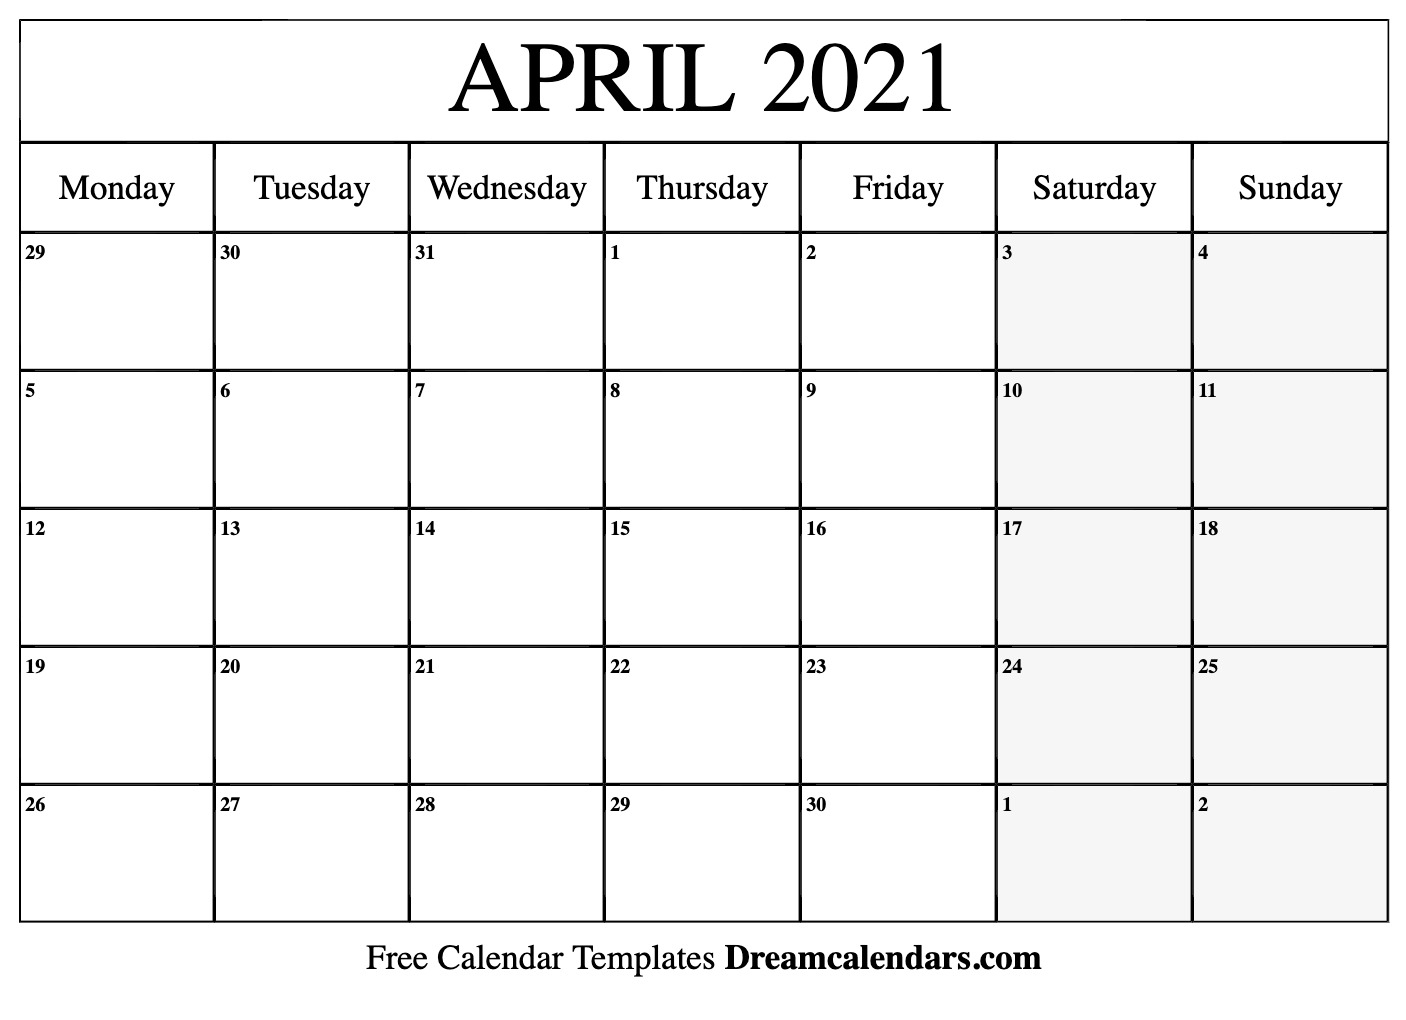 April 2021 Printable Calendar | Dream Calendars